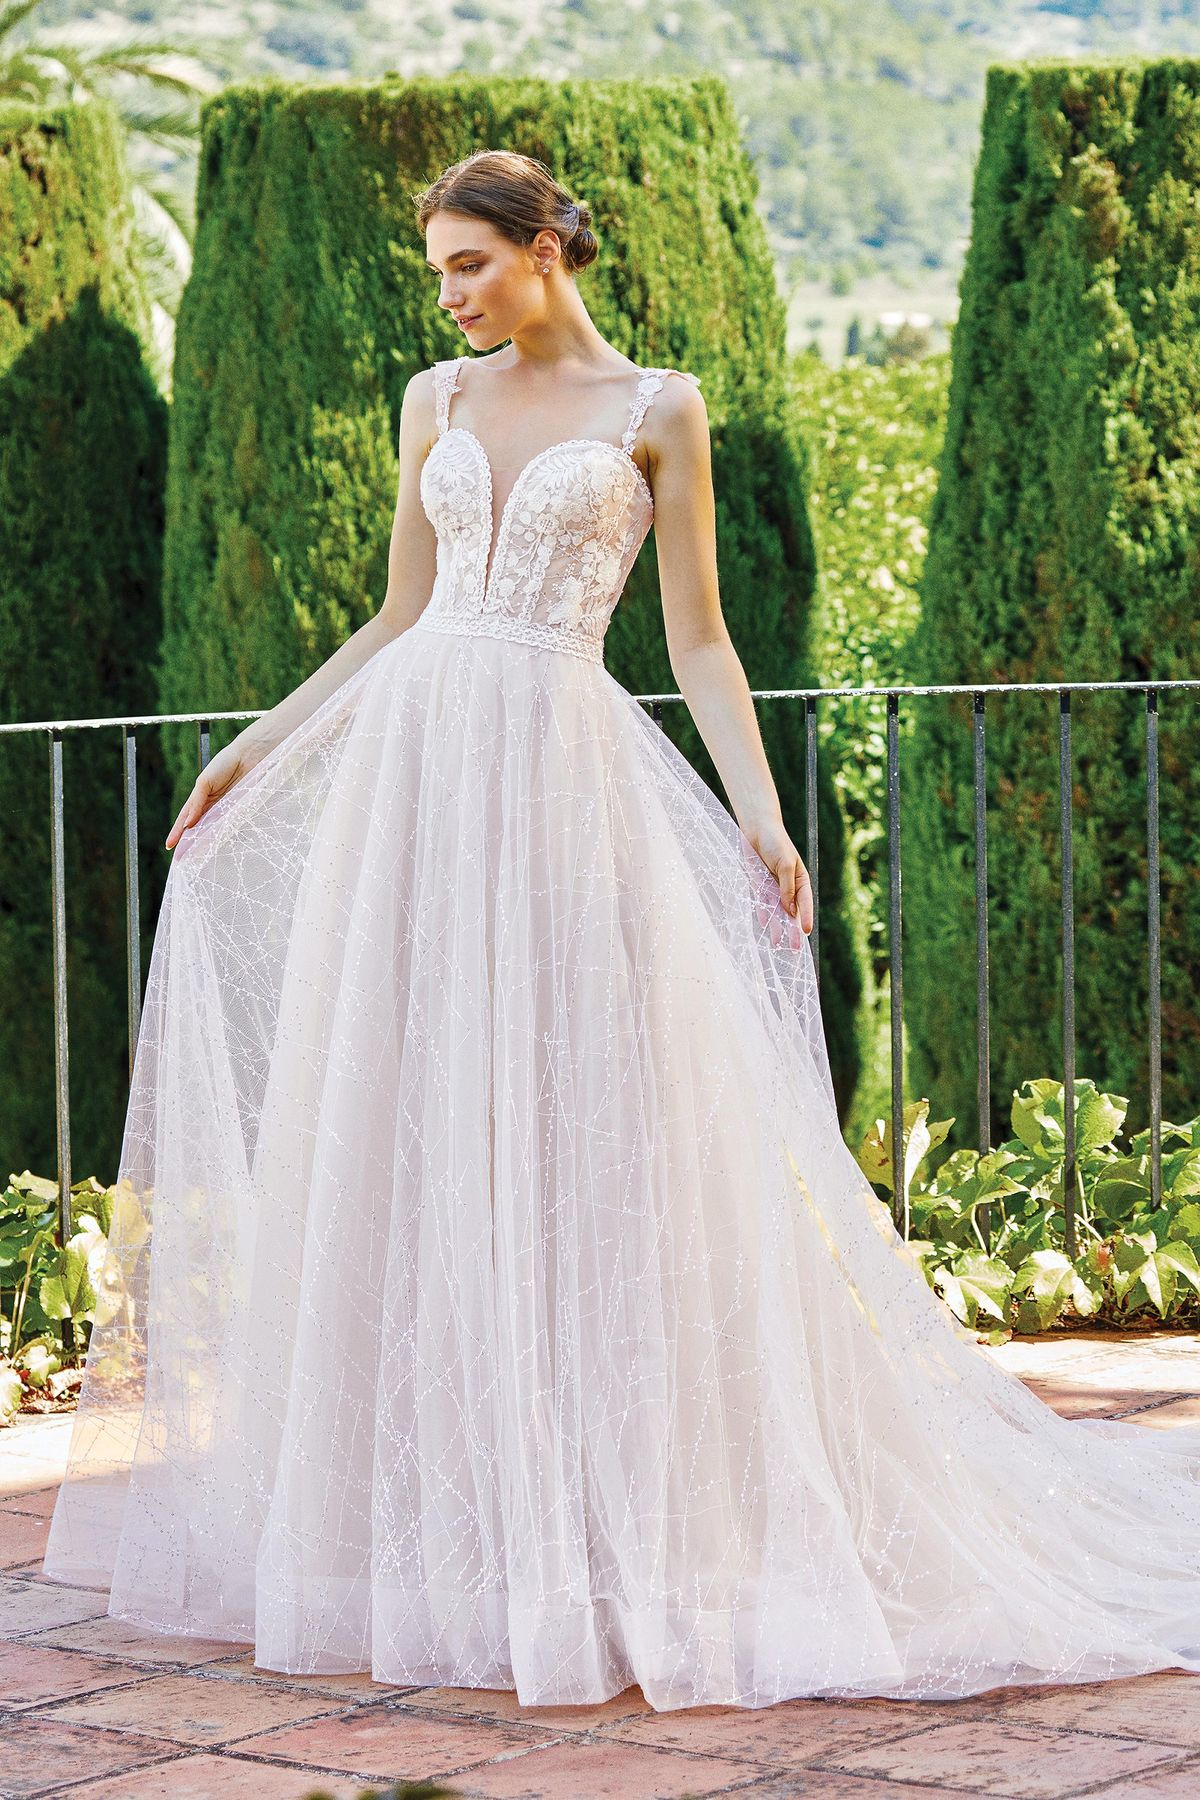 44217_FF_Sincerity-Bridal